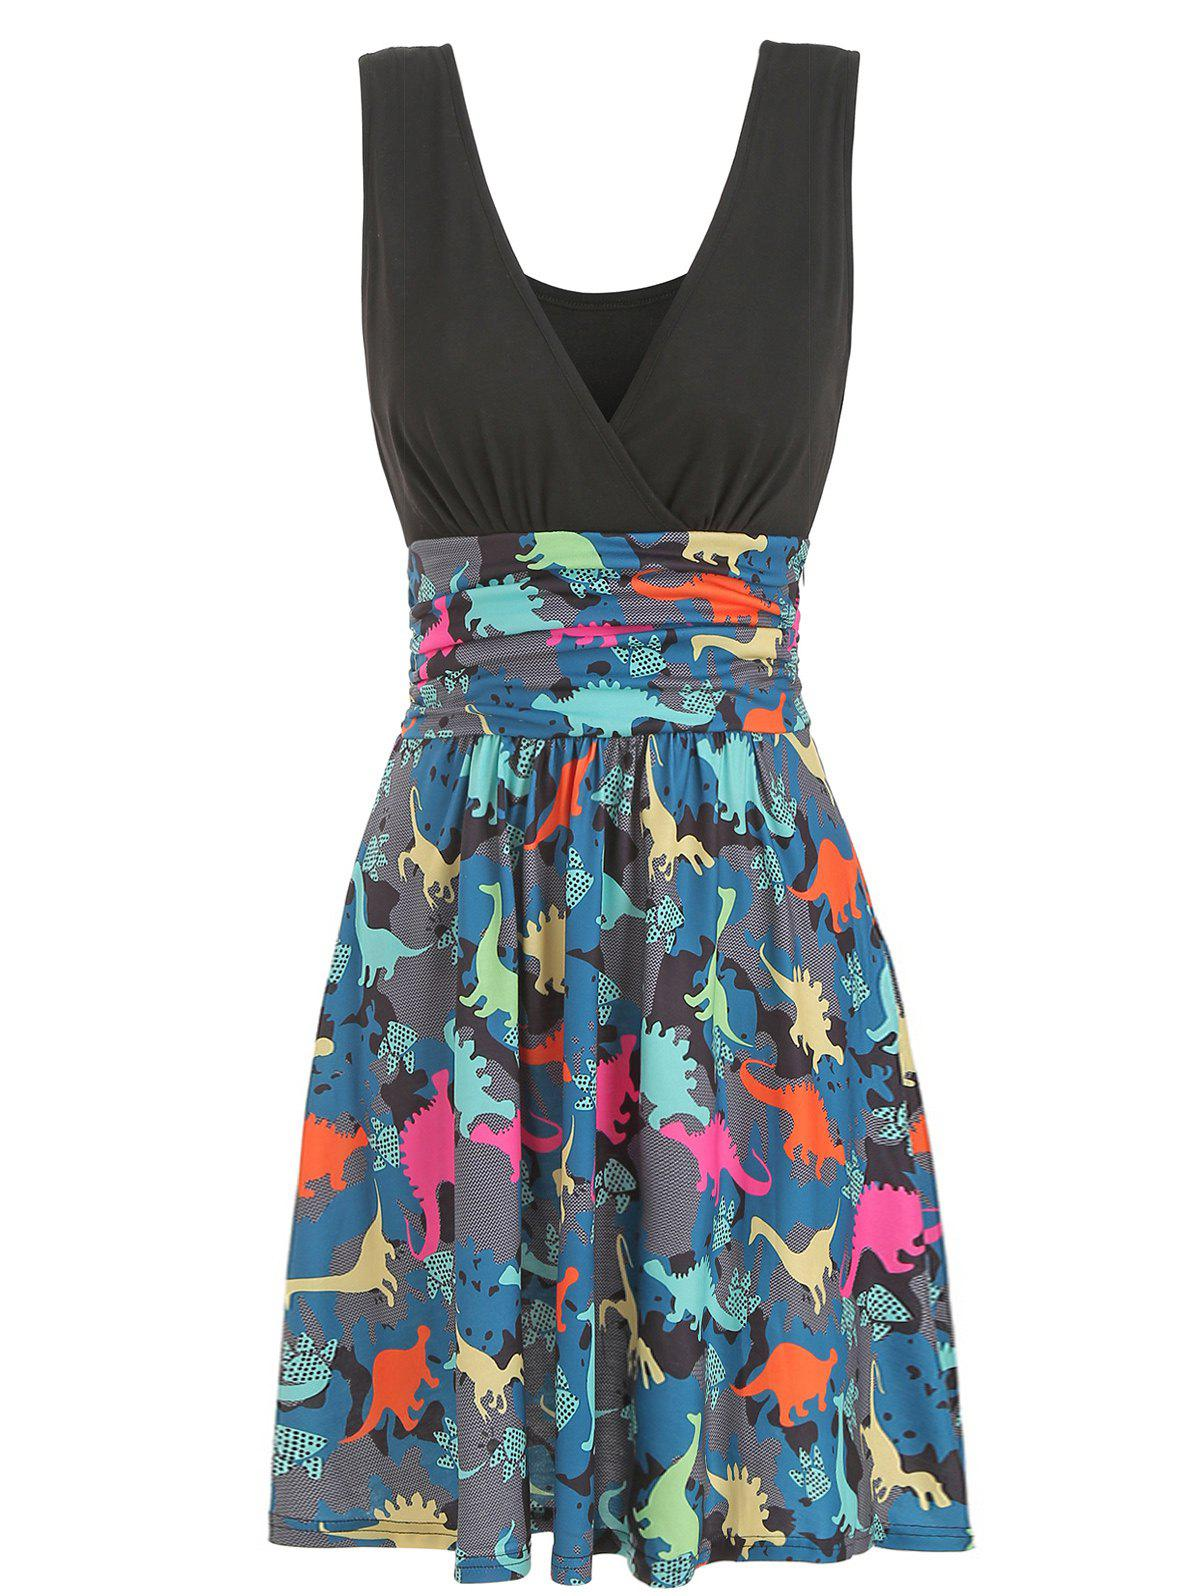 Ruched Dinosaur Print Sleeveless Flare Dress - BLACK 2XL